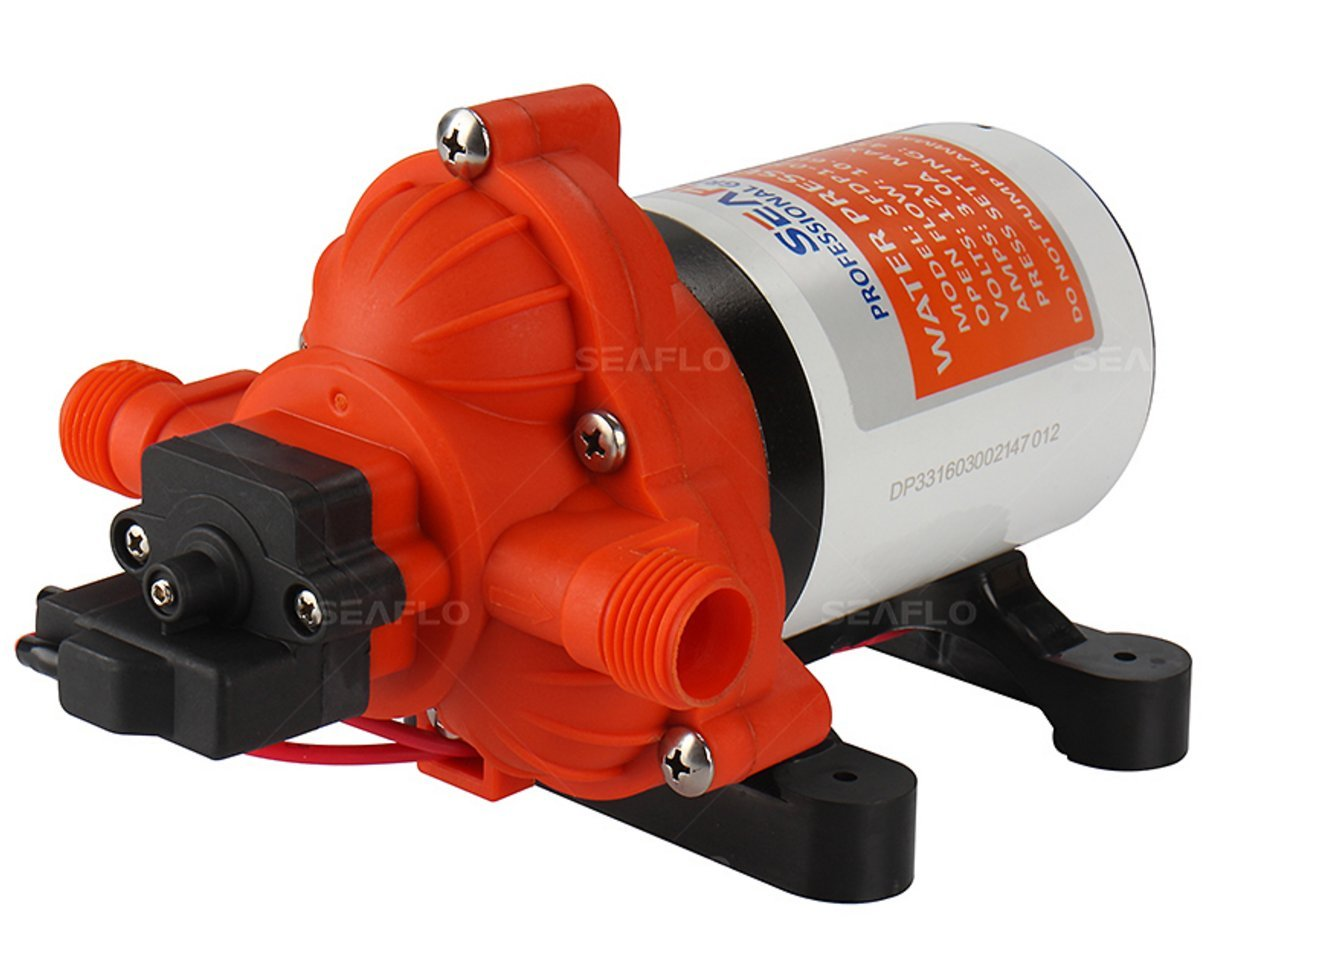 SEAFLO DC Diaphragm Pump - 12v, 3.0 GPM, 45PSI w/Automatic Switch by SEAFLO